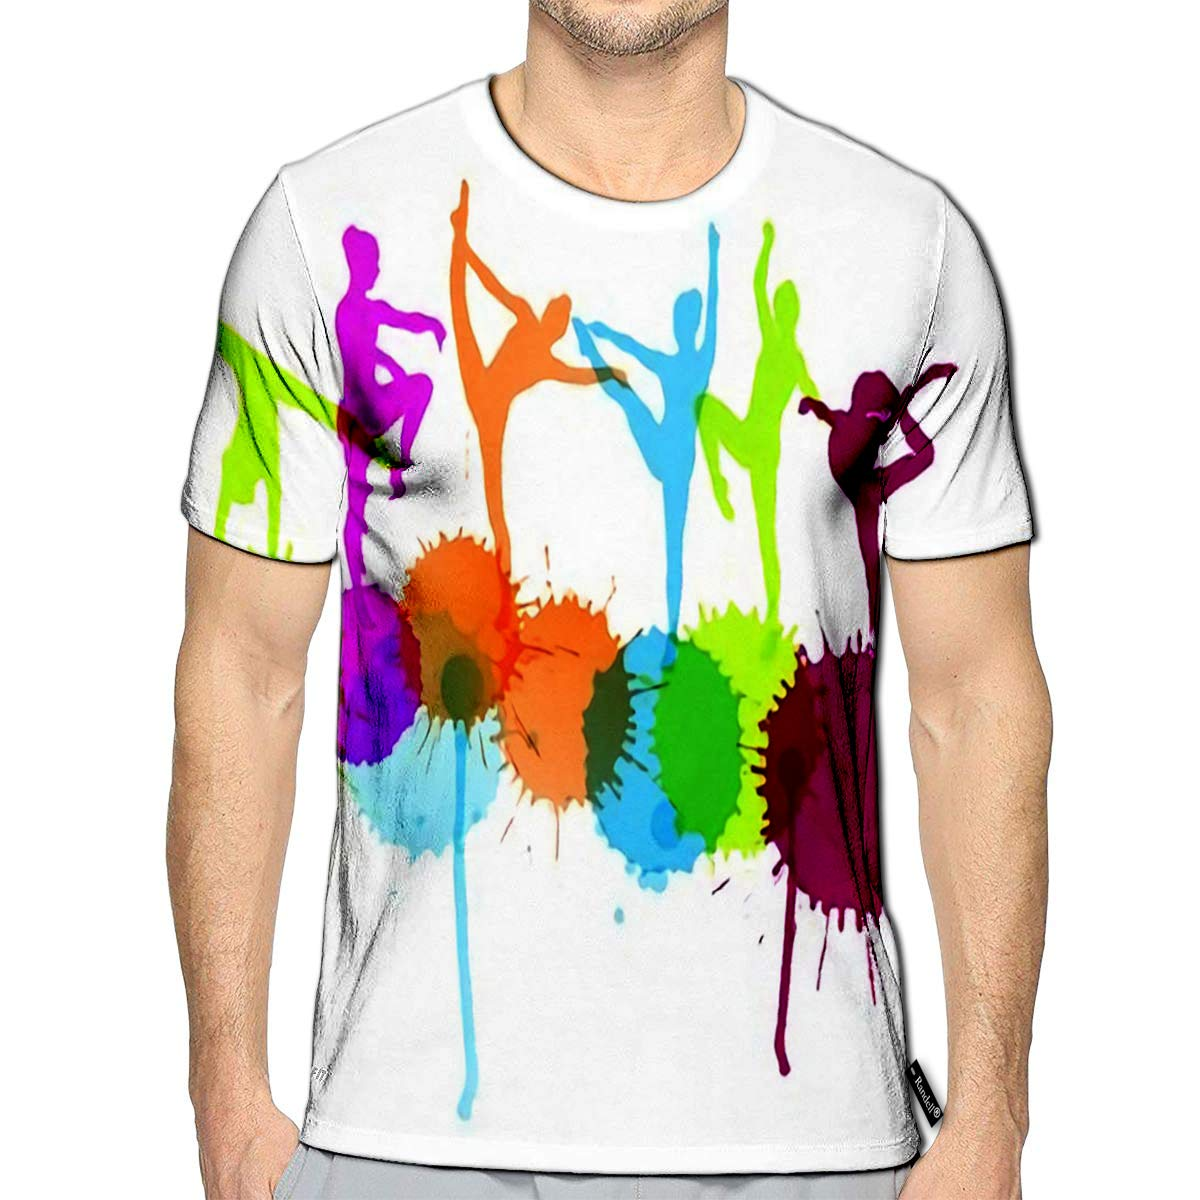 3D Printed T-Shirts Dancers Silhouette Abstract Concept with Ink Splashes Short